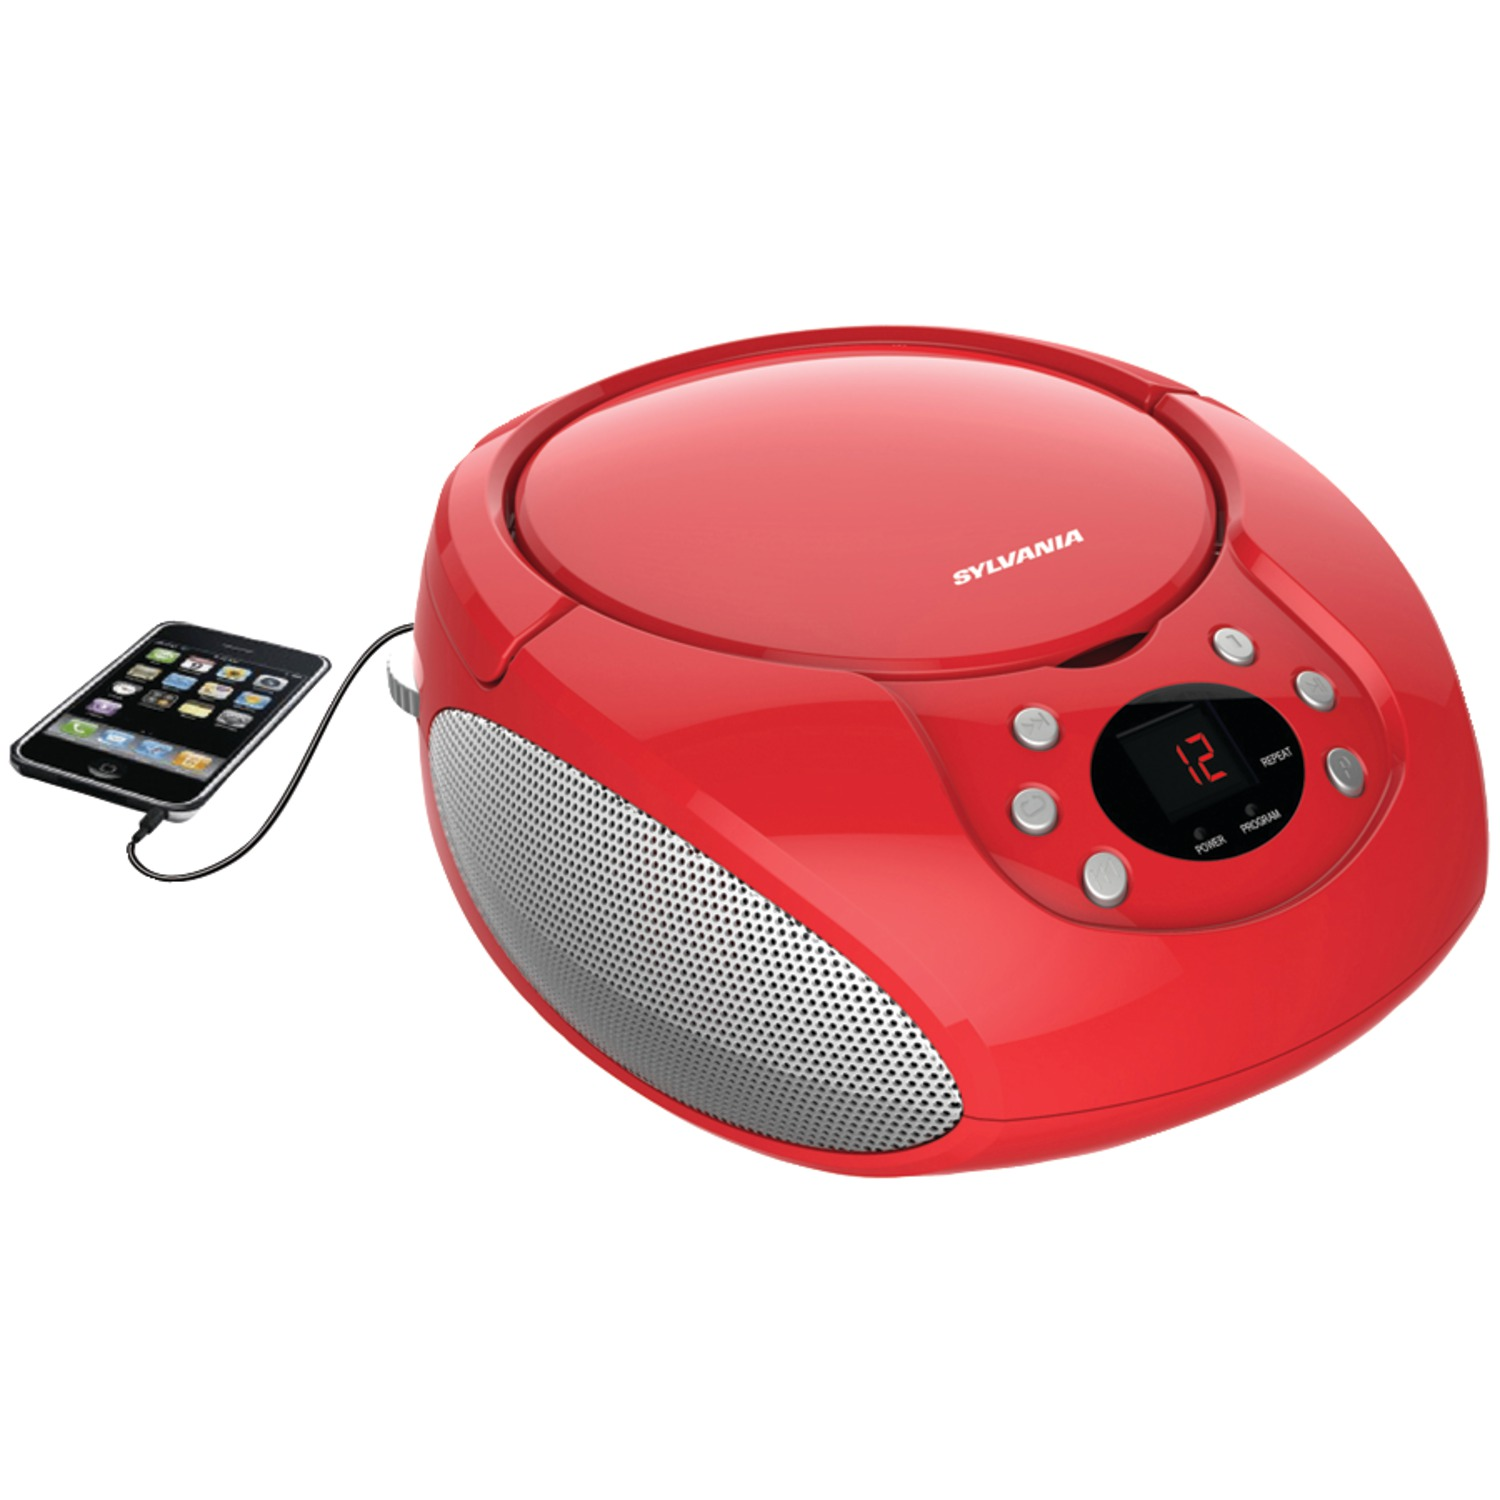 sylvania srcd261 b red portable cd player with am fm radio red. Black Bedroom Furniture Sets. Home Design Ideas